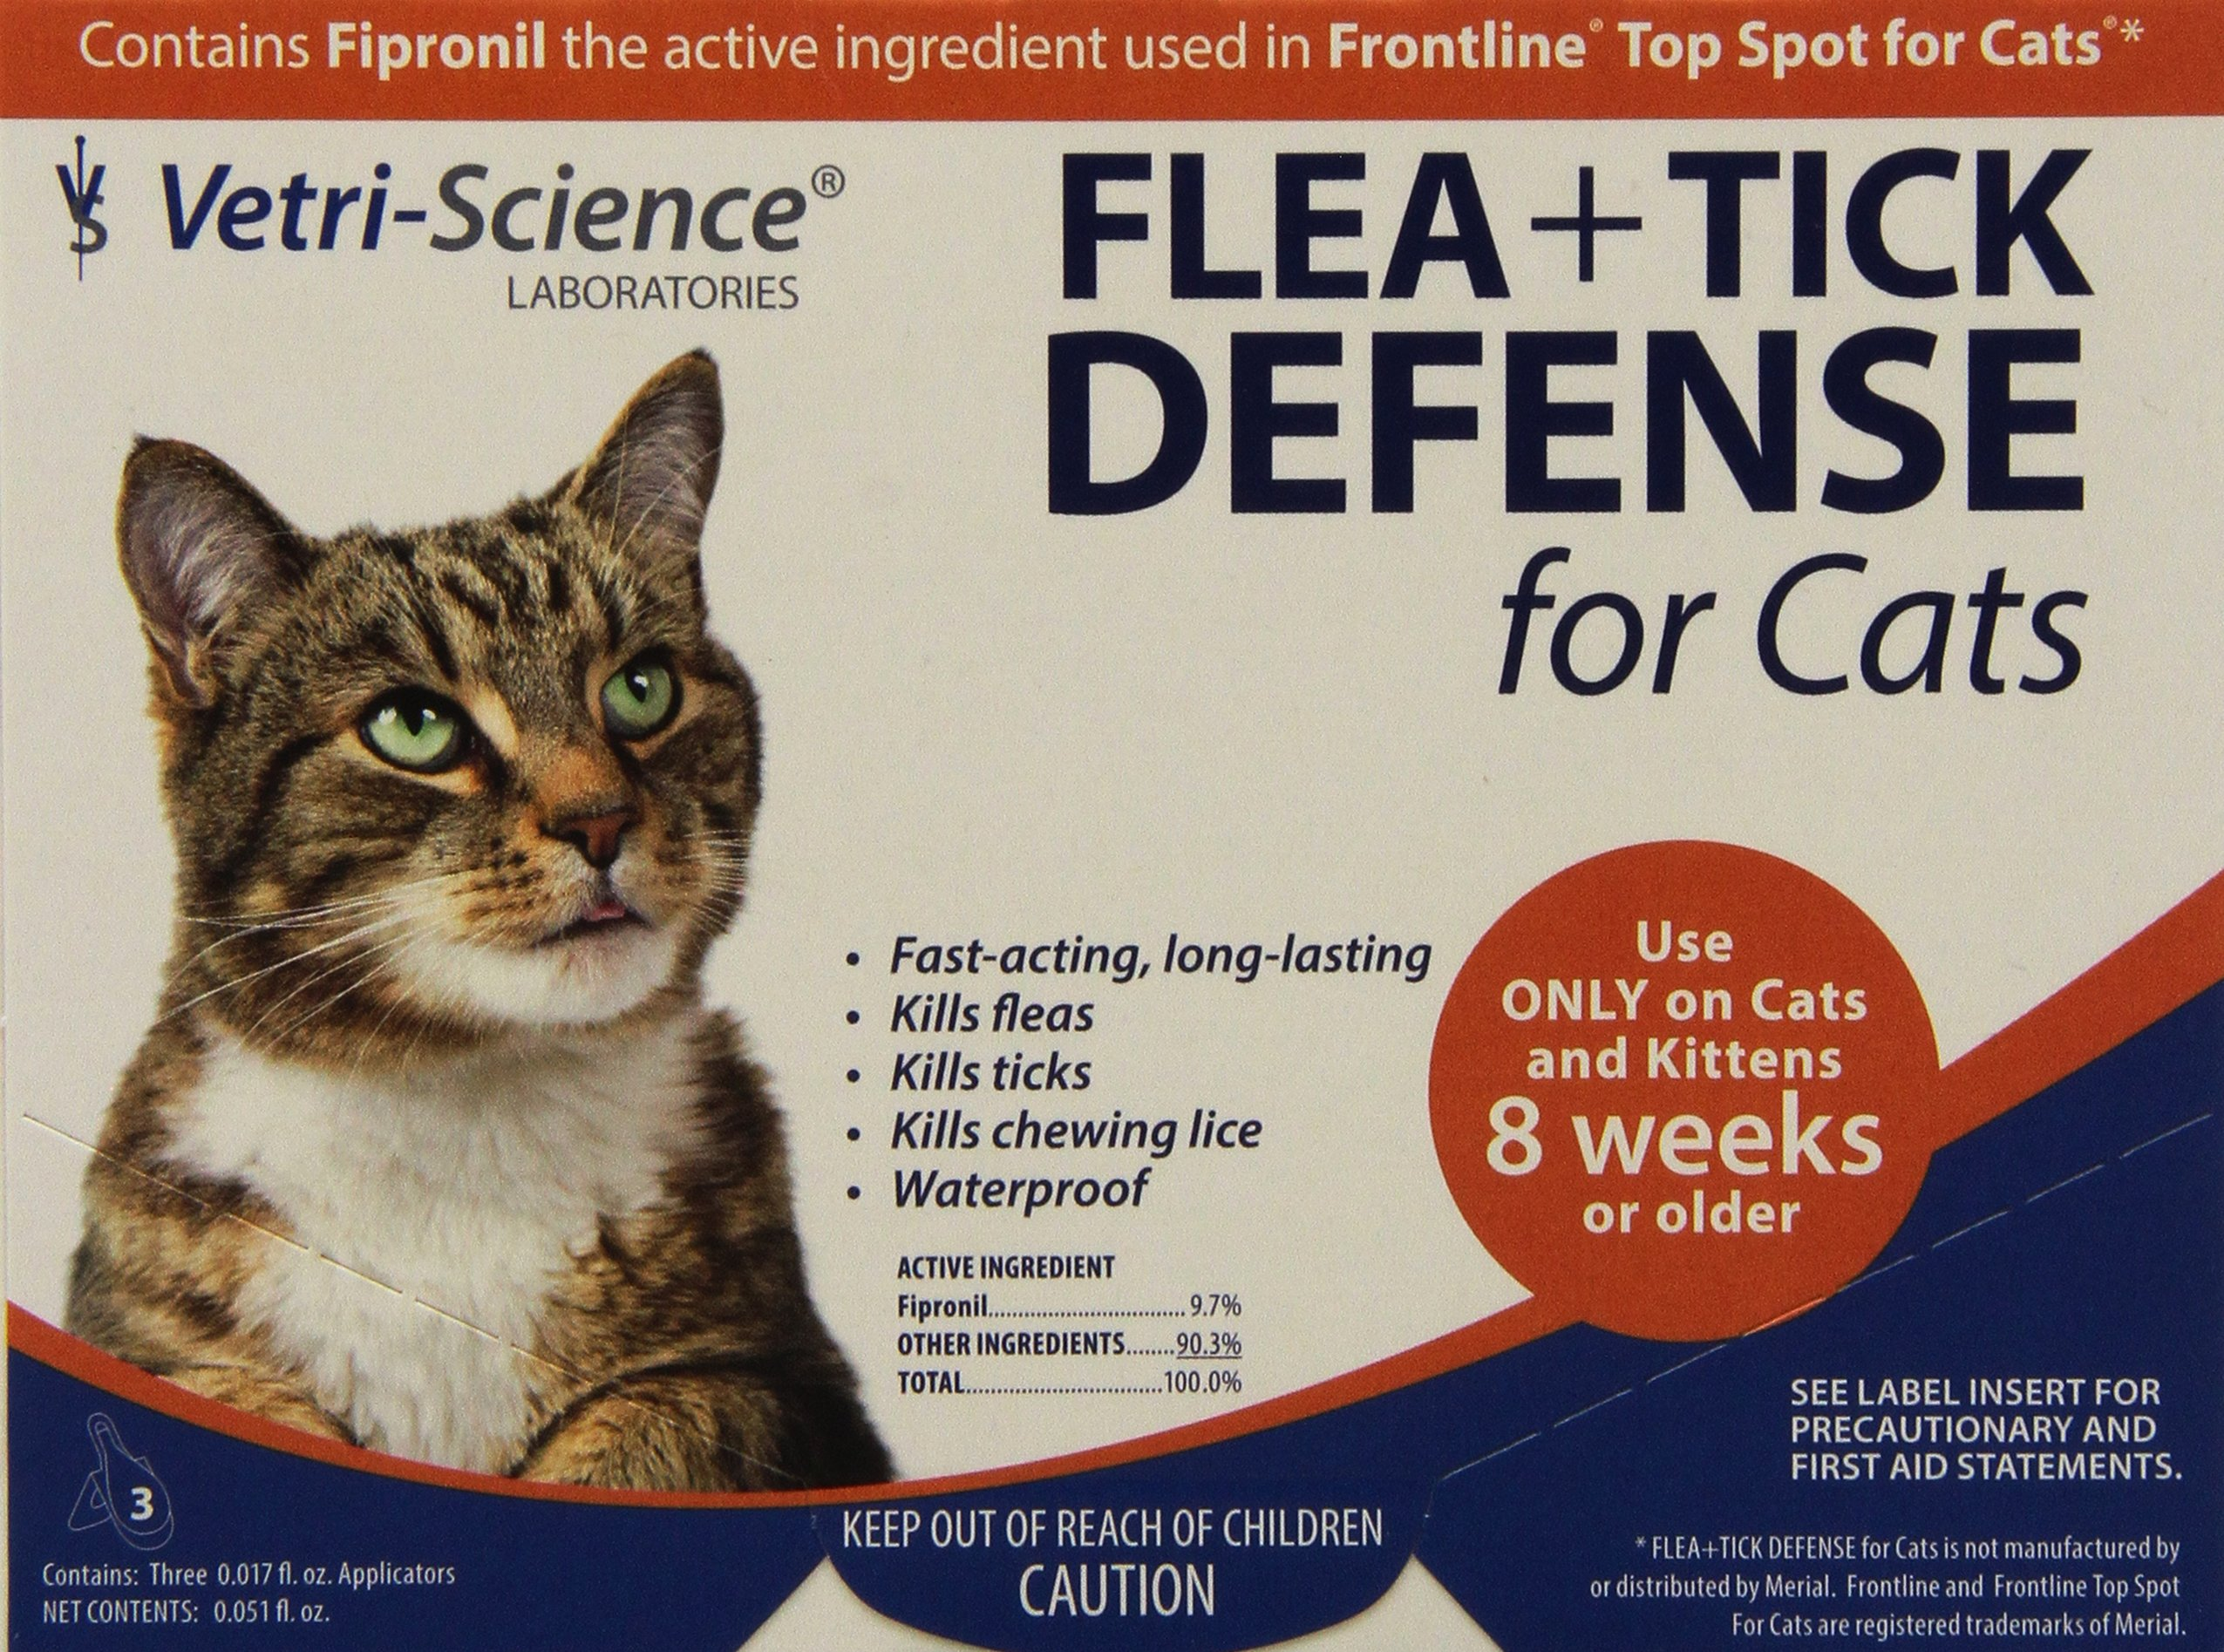 VetriScience Laboratories Flea and Tick Defense for Cats and Kittens, 12 Doses